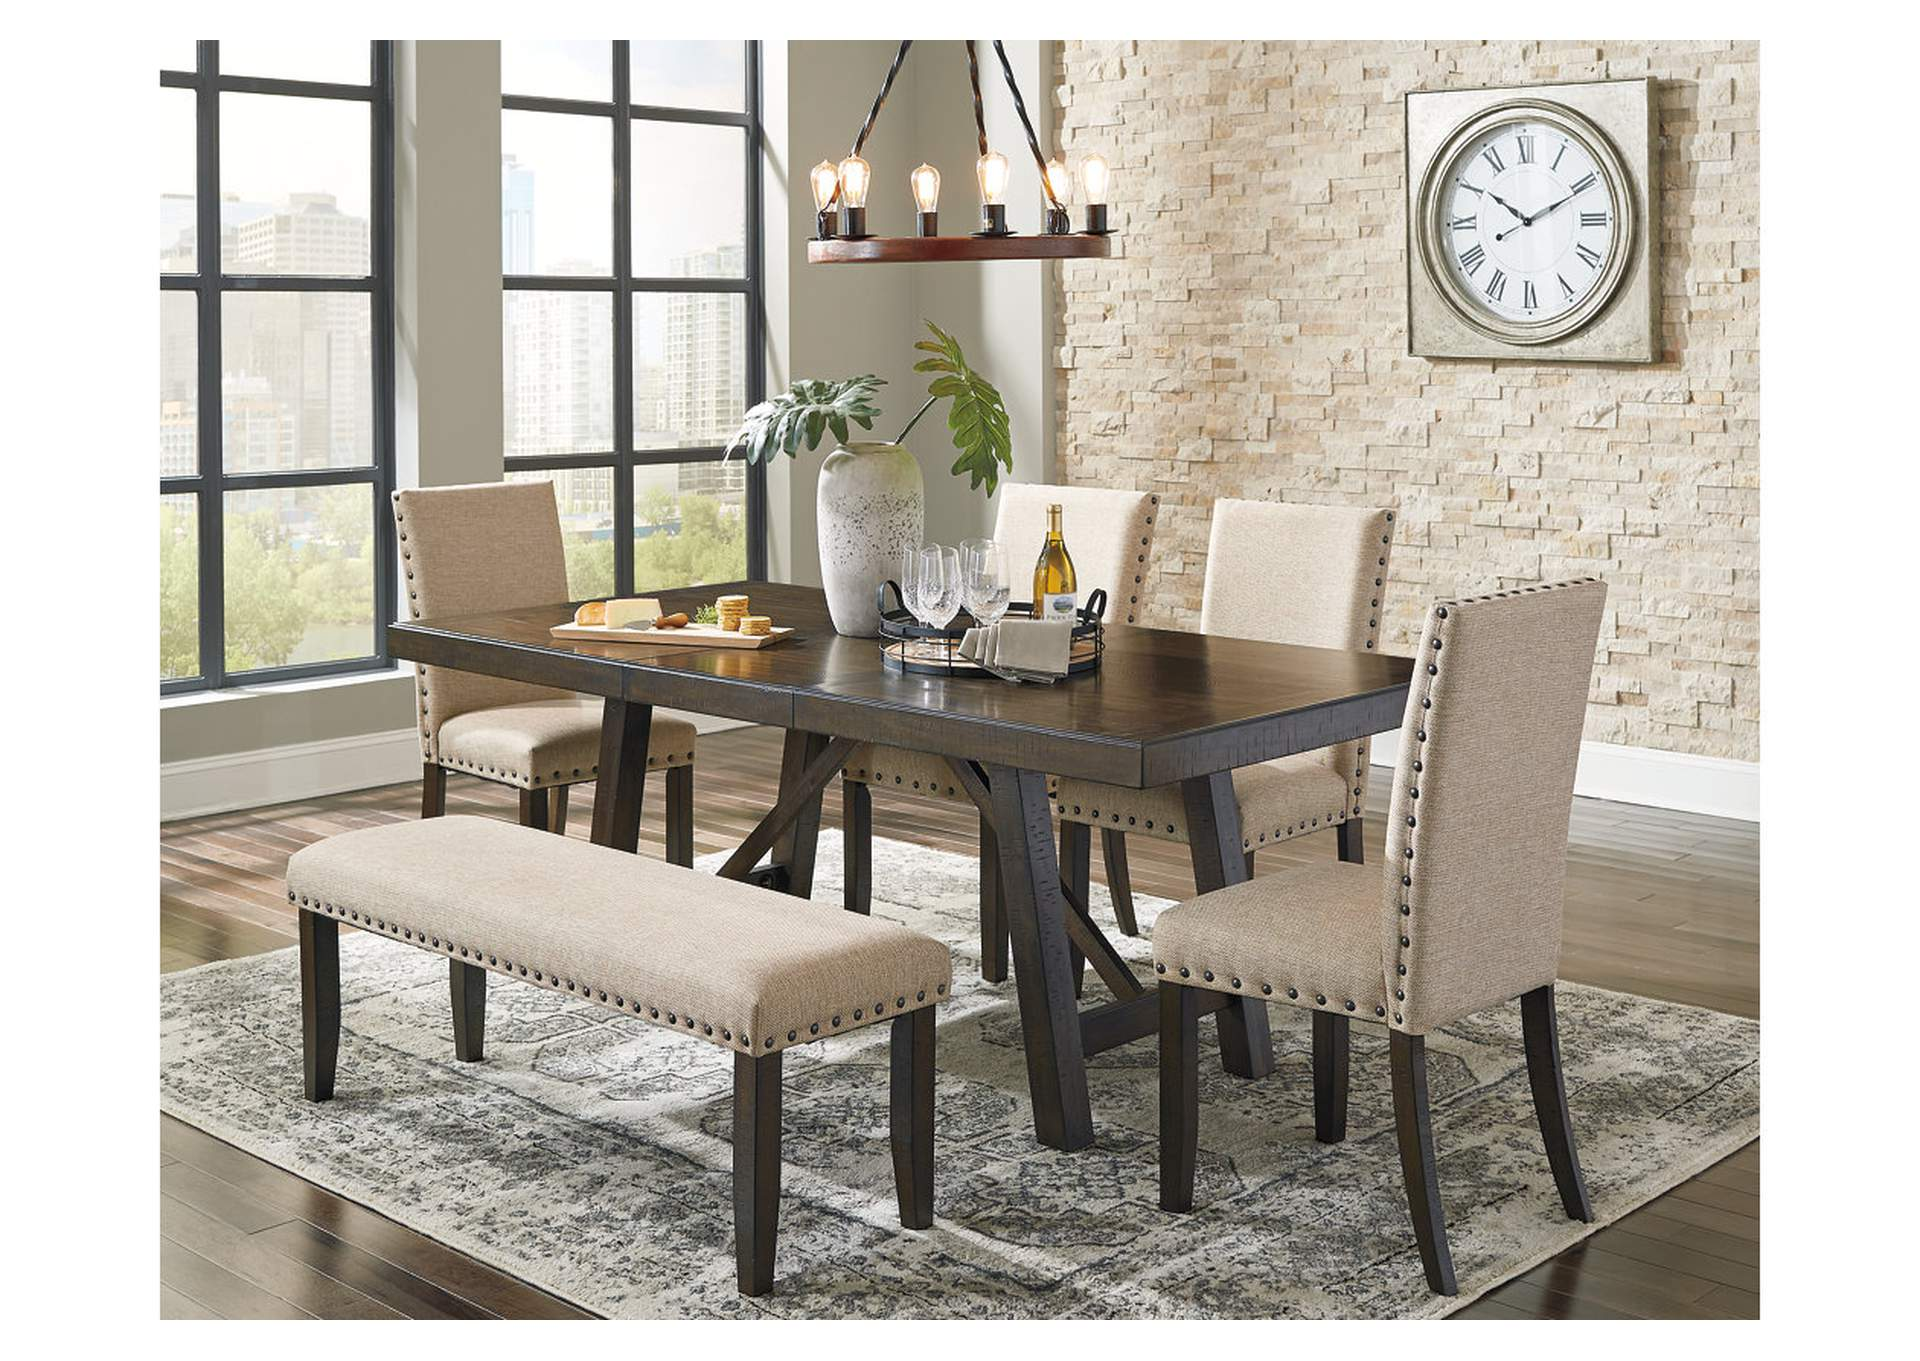 Rokane Light Brown Dining Table W 2 Side Chairs Bench American Furniture Design